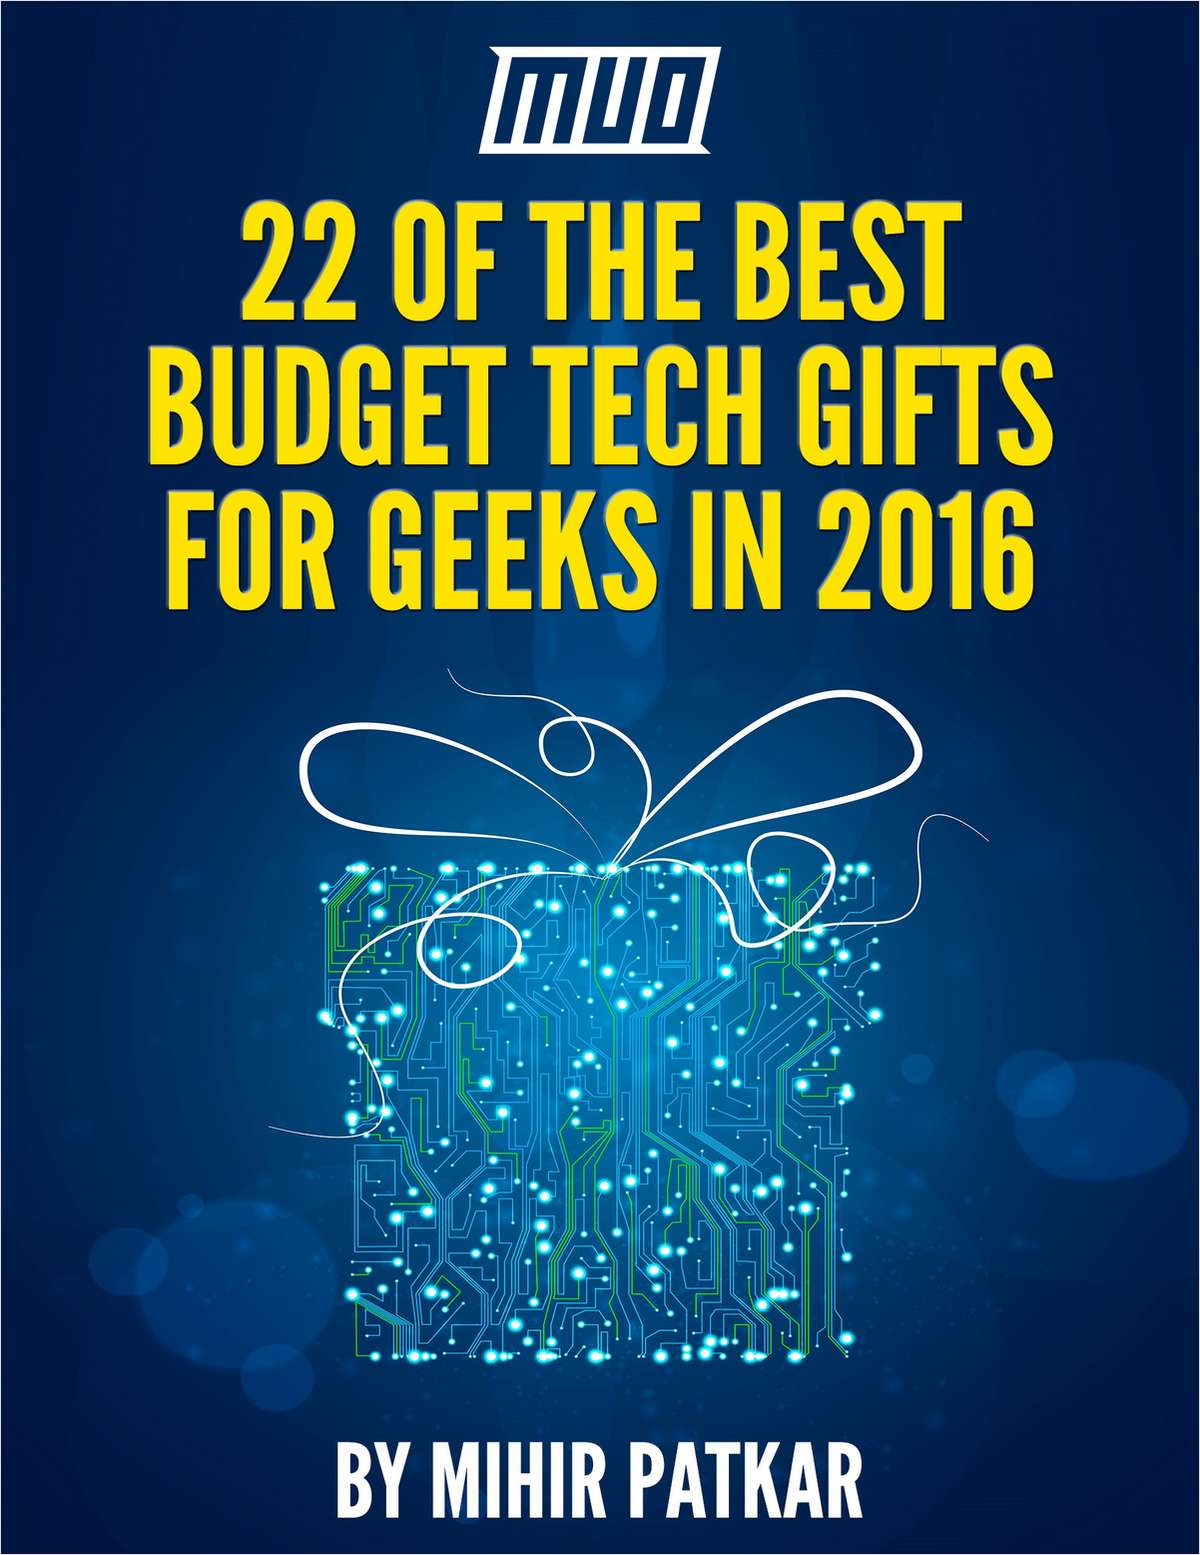 22 of the Best Budget Tech Gifts for Geeks in 2016